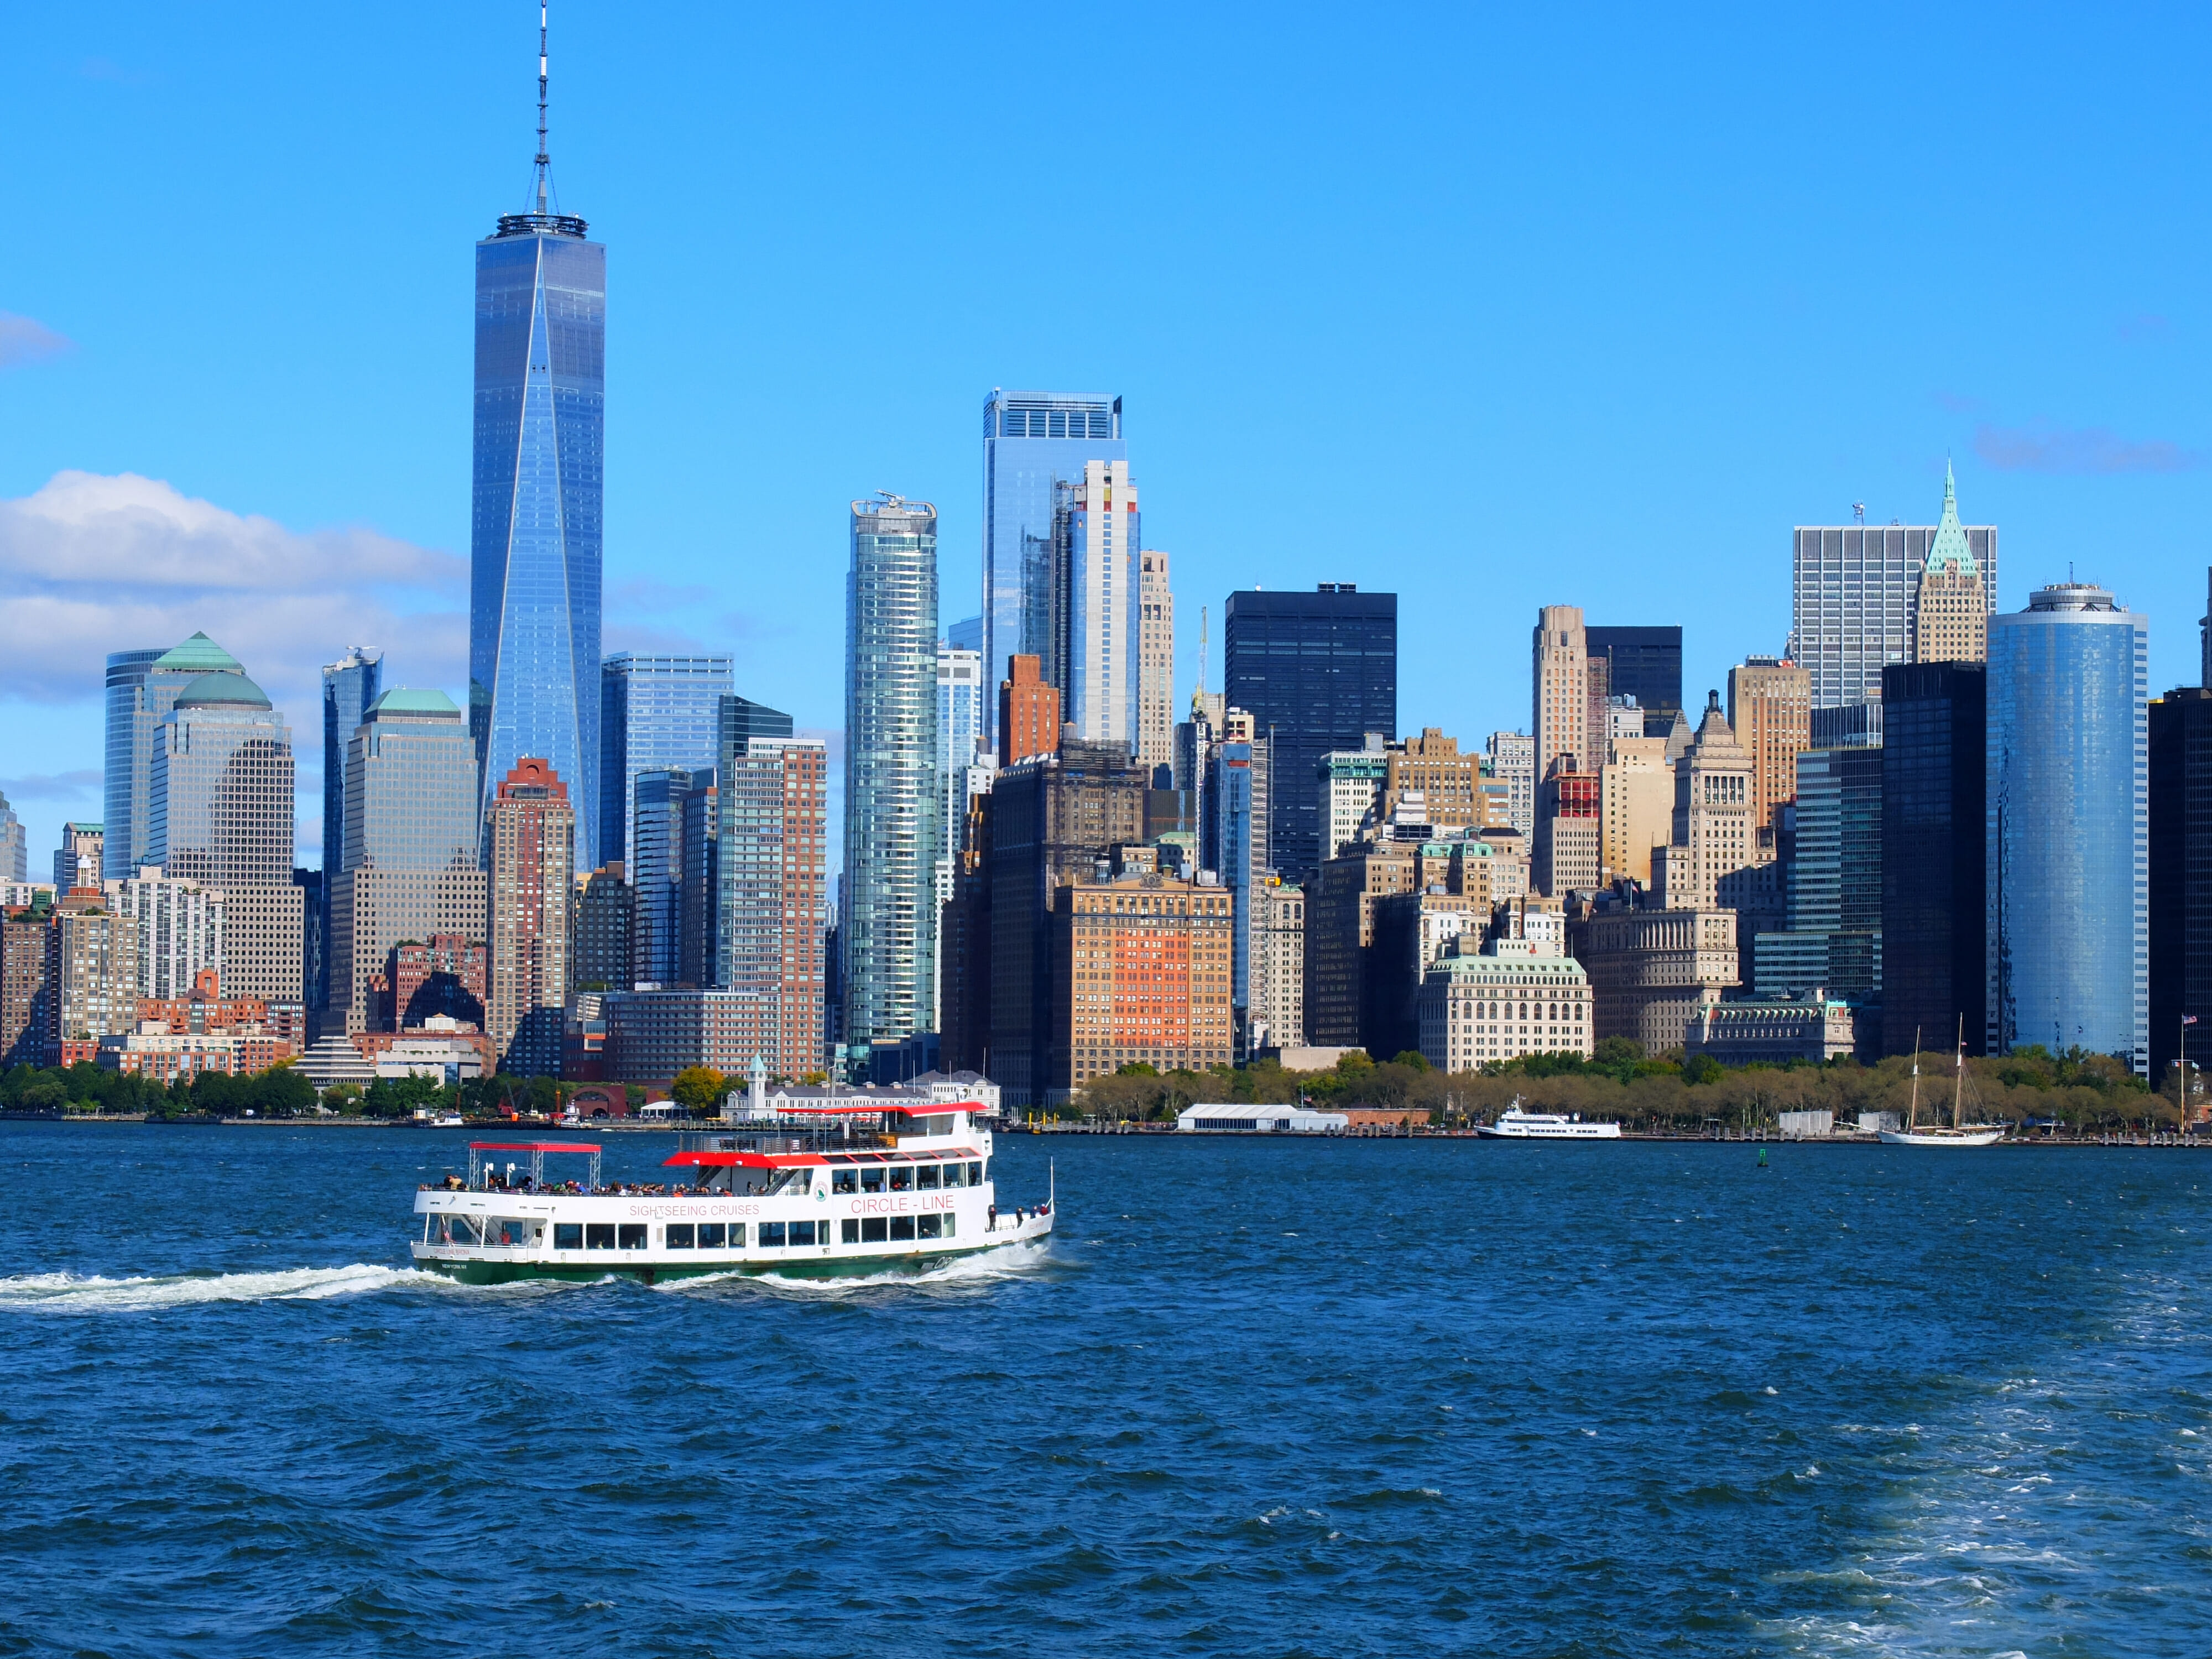 Circle Line Boat tours in NYC – High Quality Wallpaper